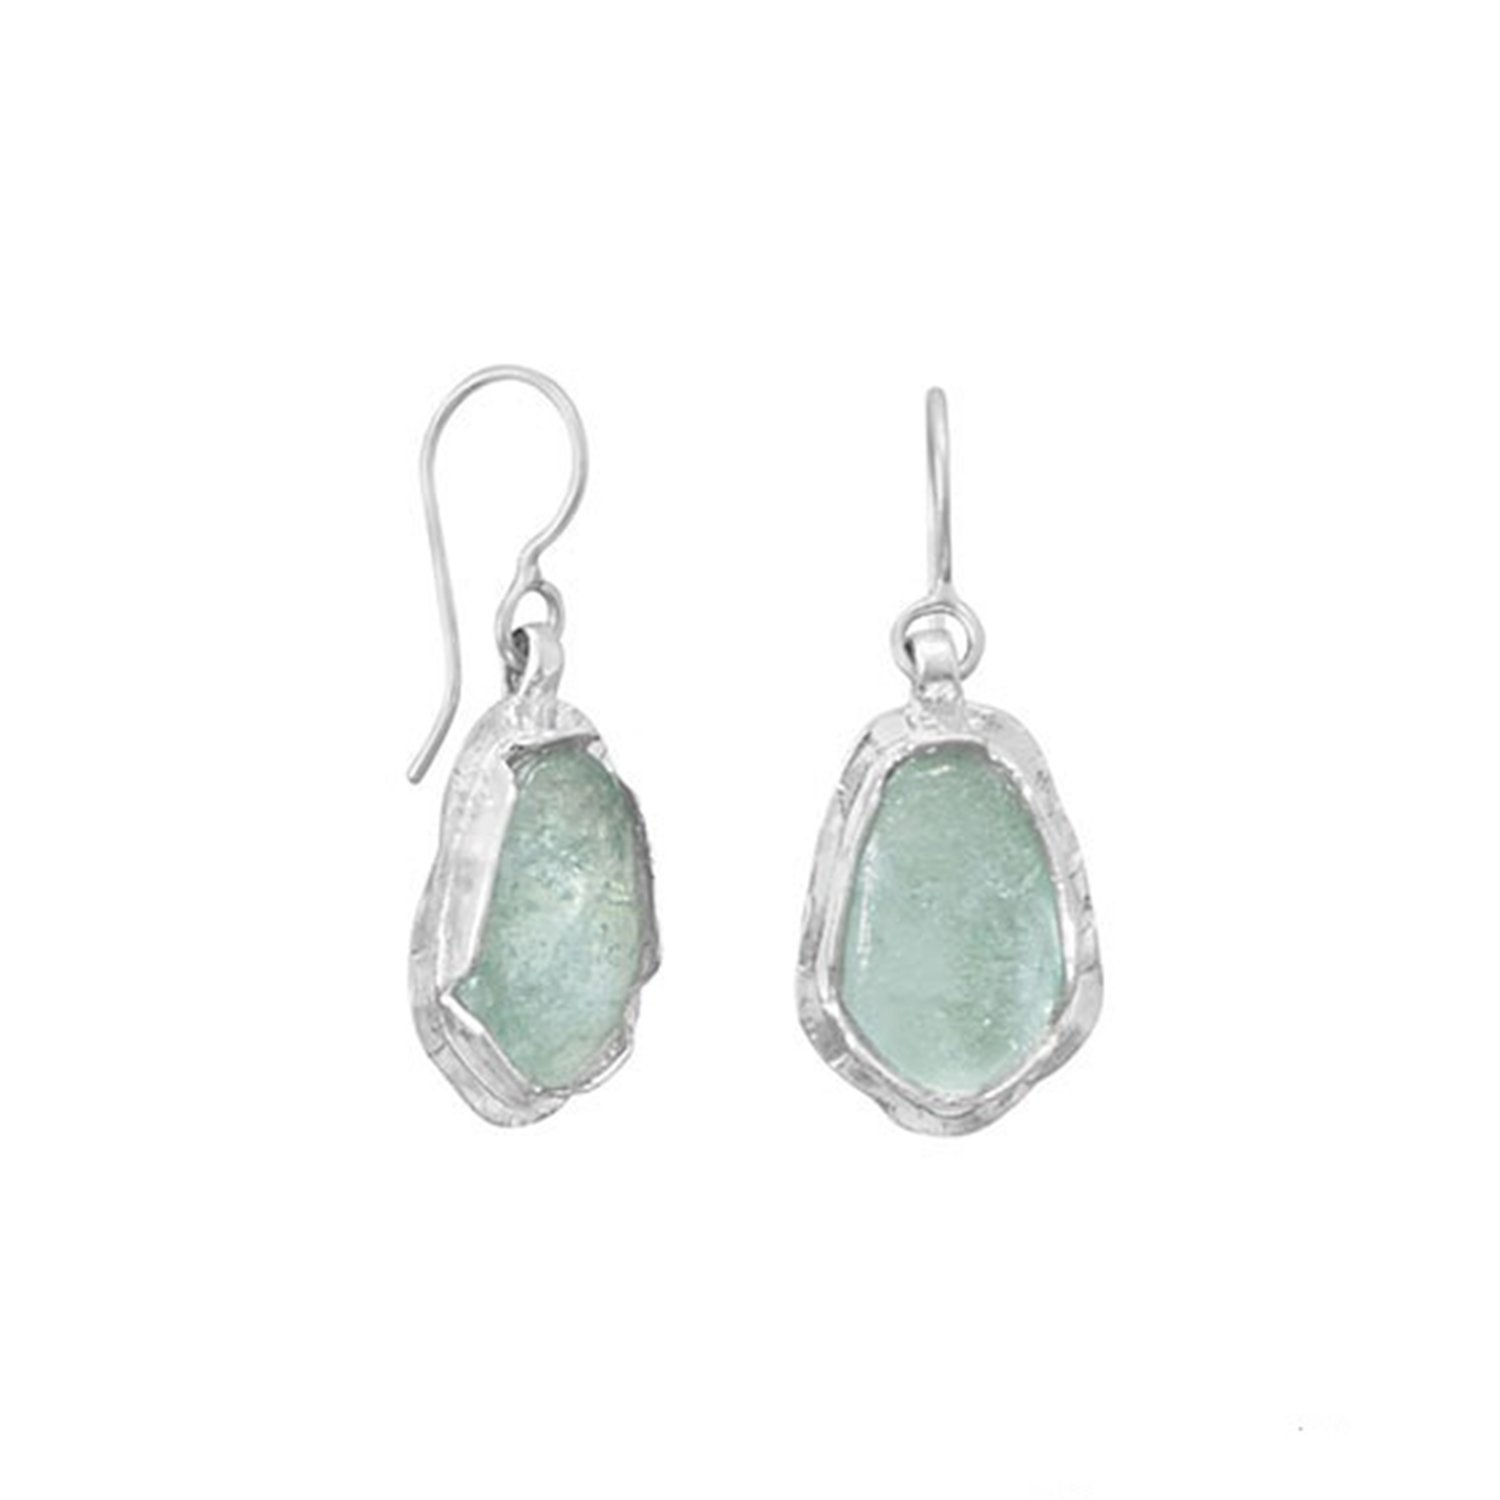 Ancient Roman Glass Earrings with Textured Edge Handmade in Israel by Roman Glass Company